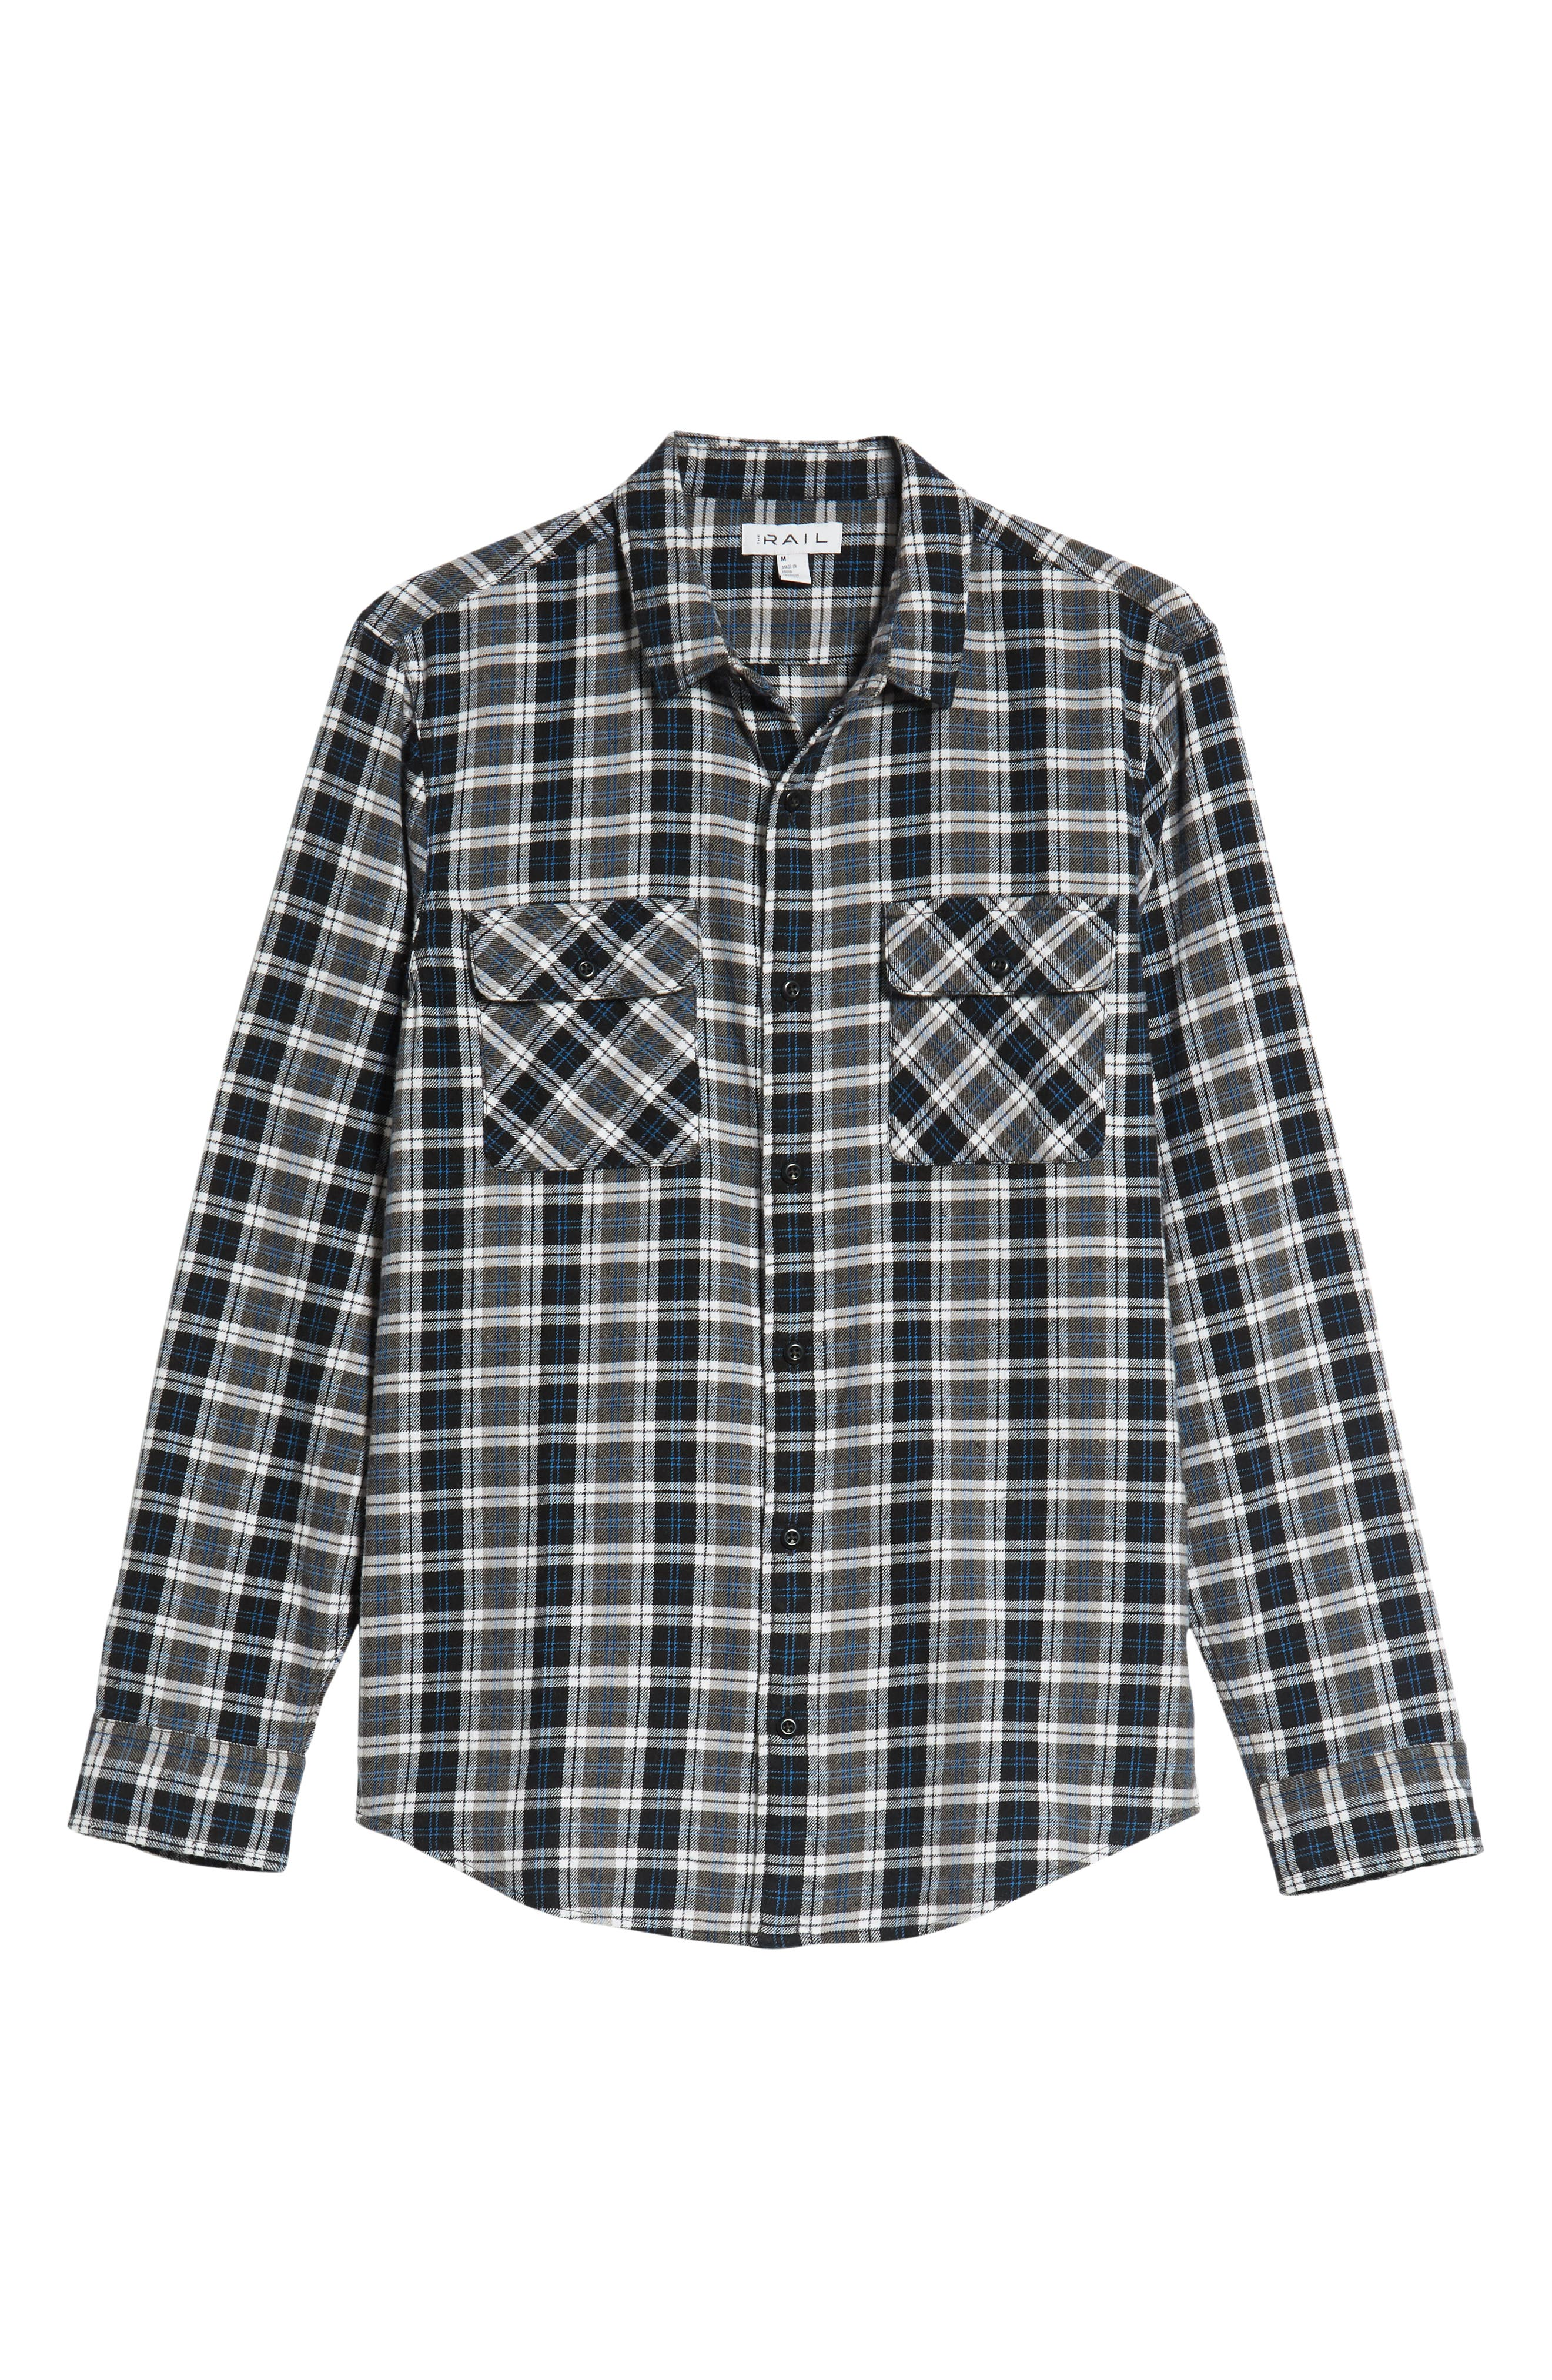 Plaid Flannel Shirt,                             Alternate thumbnail 6, color,                             030